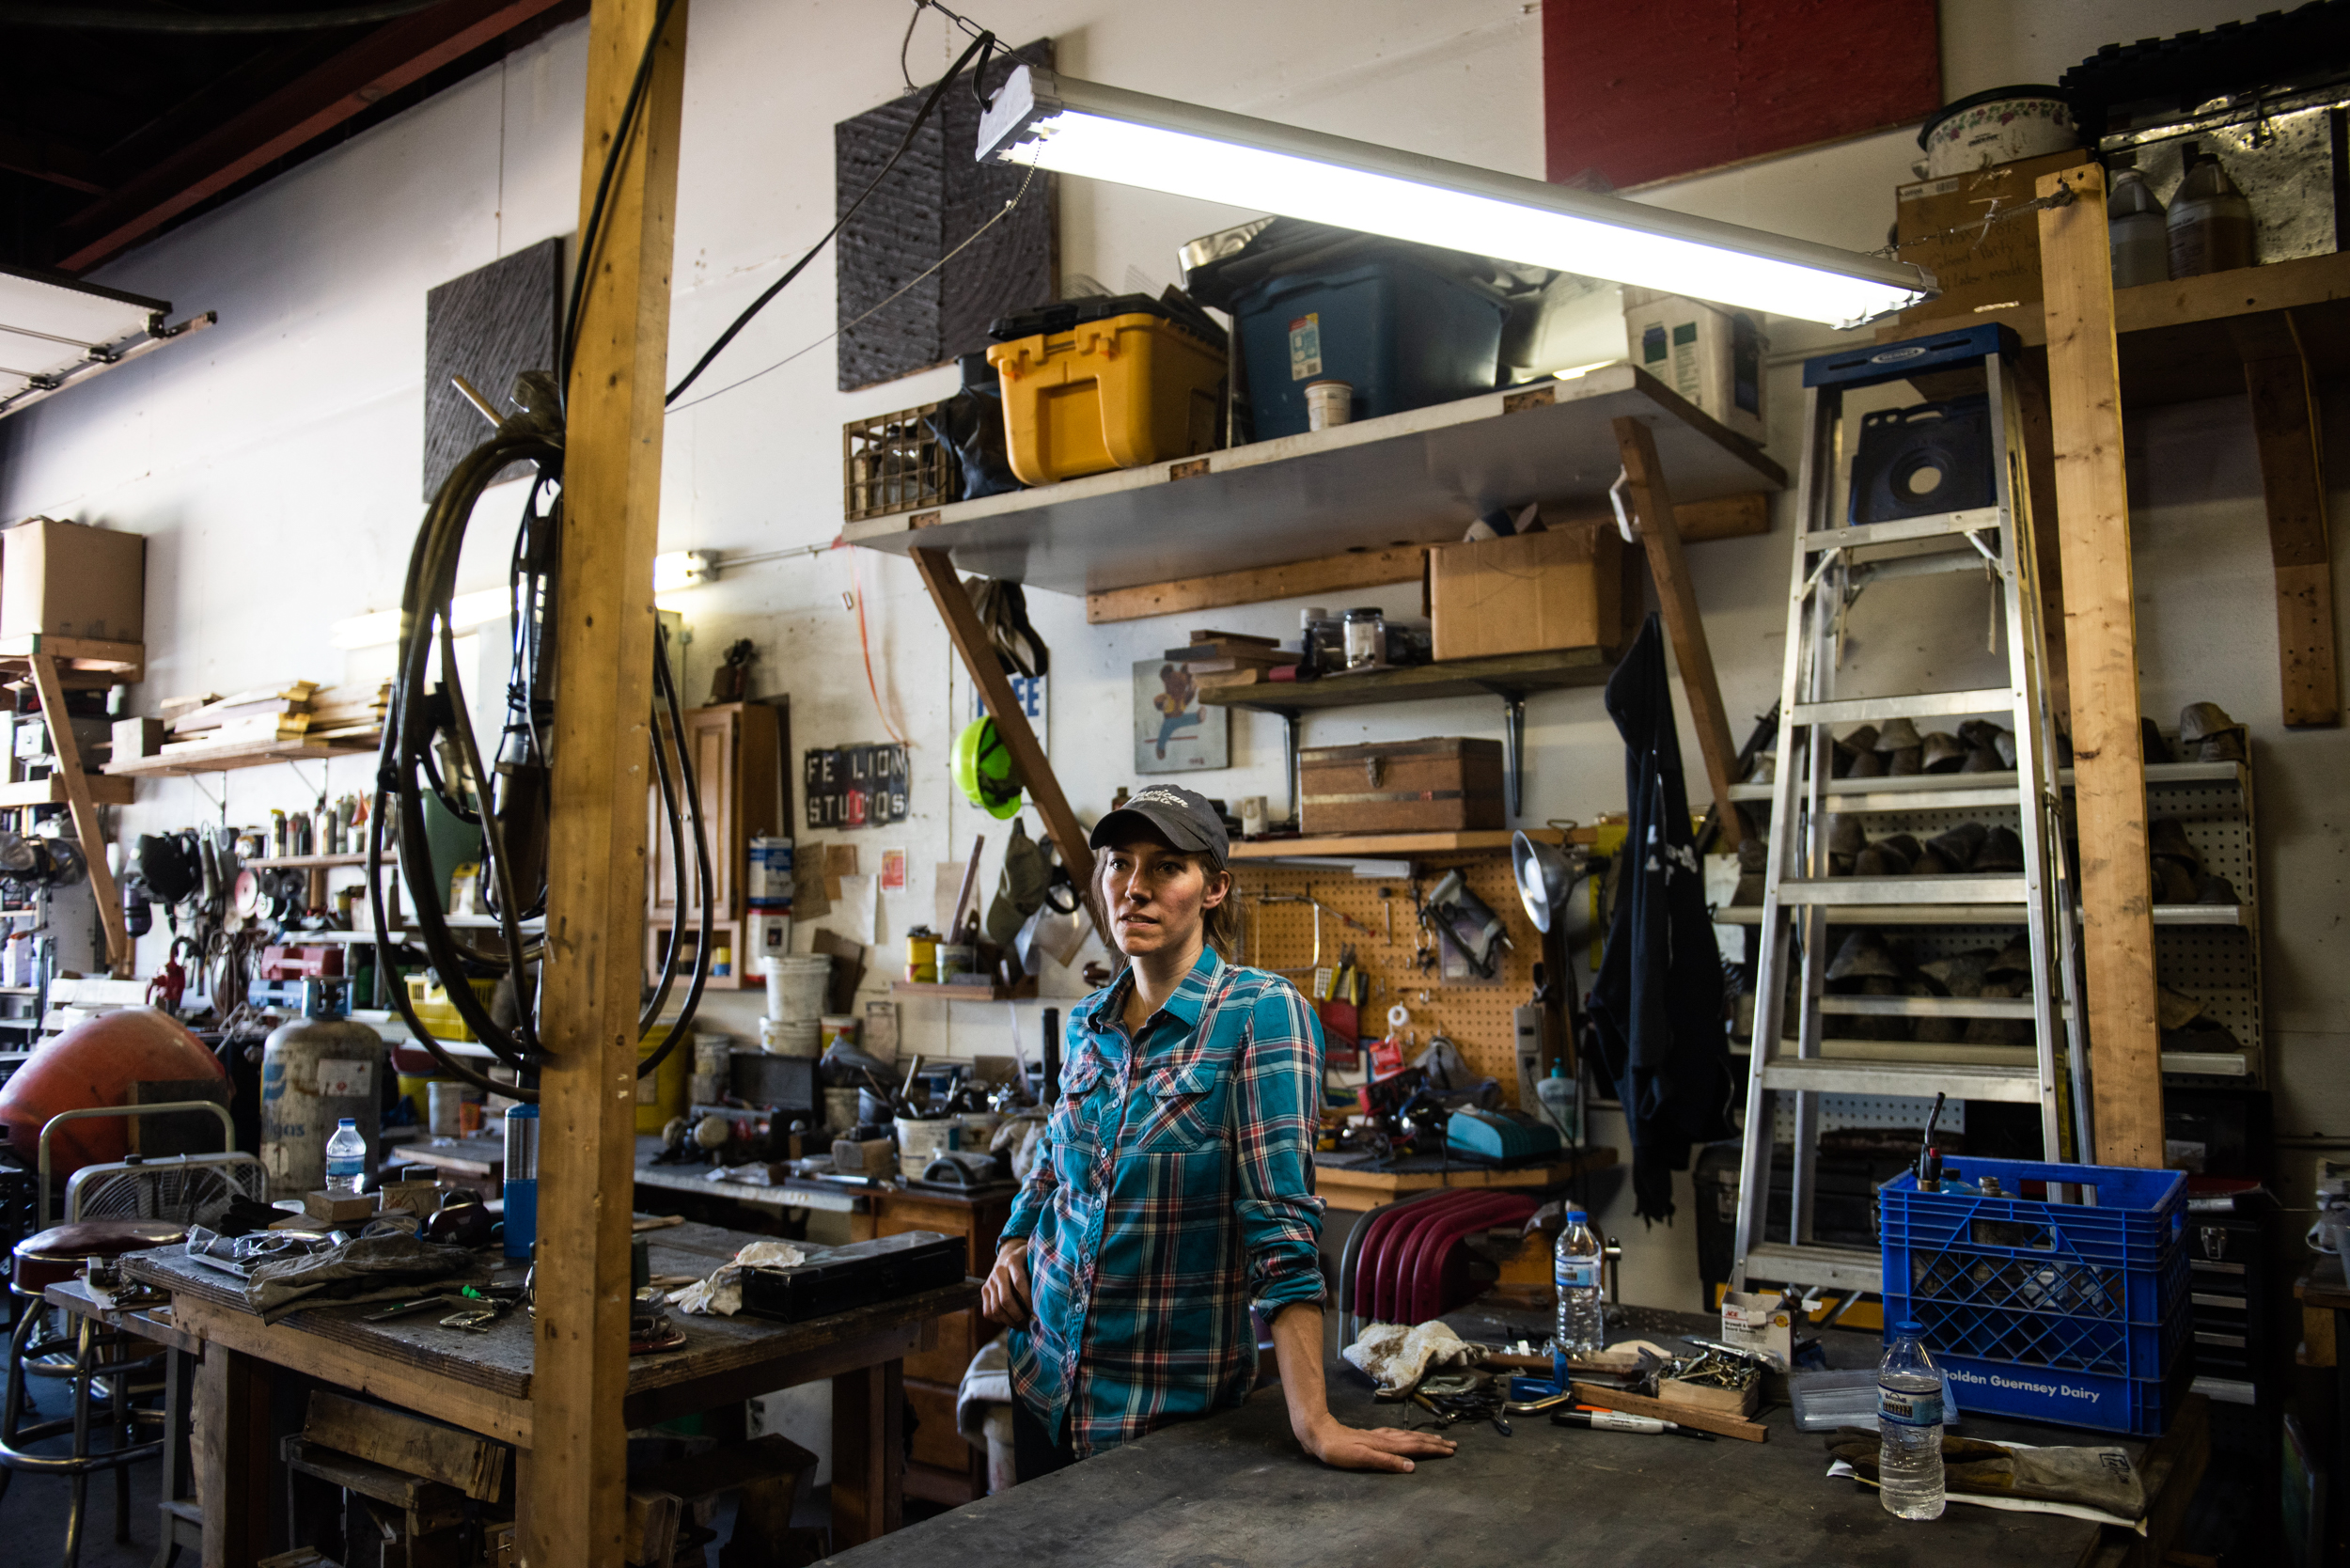 Alisa Toninato of FeLion Studios and American Skillet Company at her studio in Madison, Wisconsin on June 7, 2019 // Photo by Lauren Justice